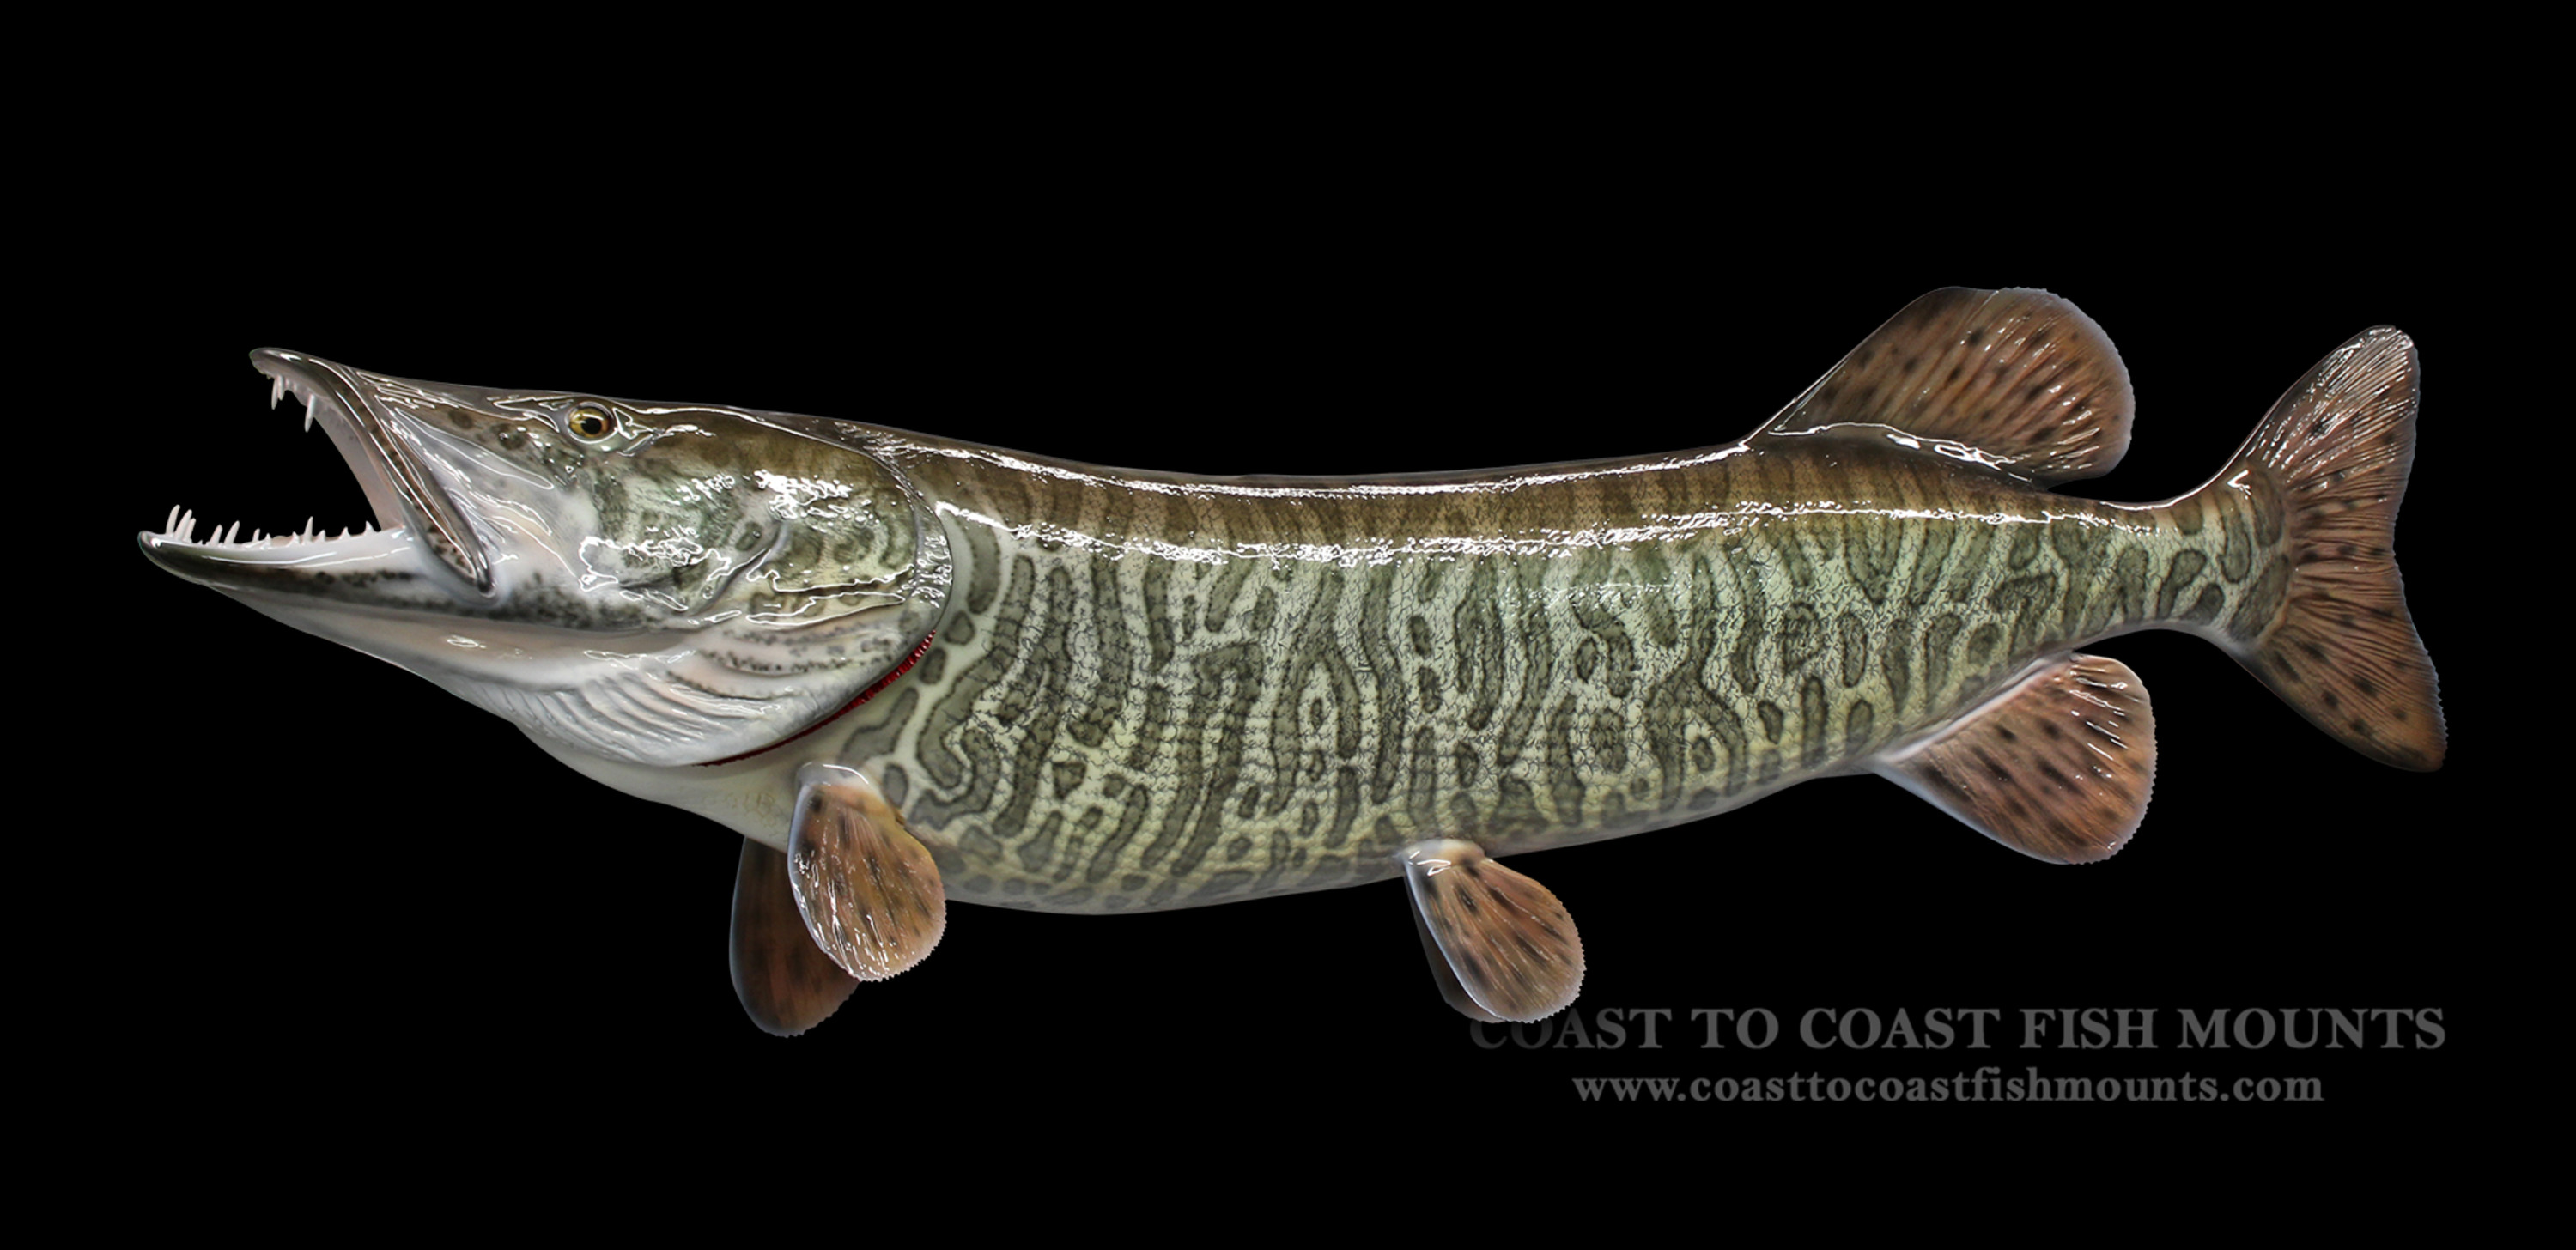 Muskie fish mount and fish replicas coast to coast for Replica fish mounts